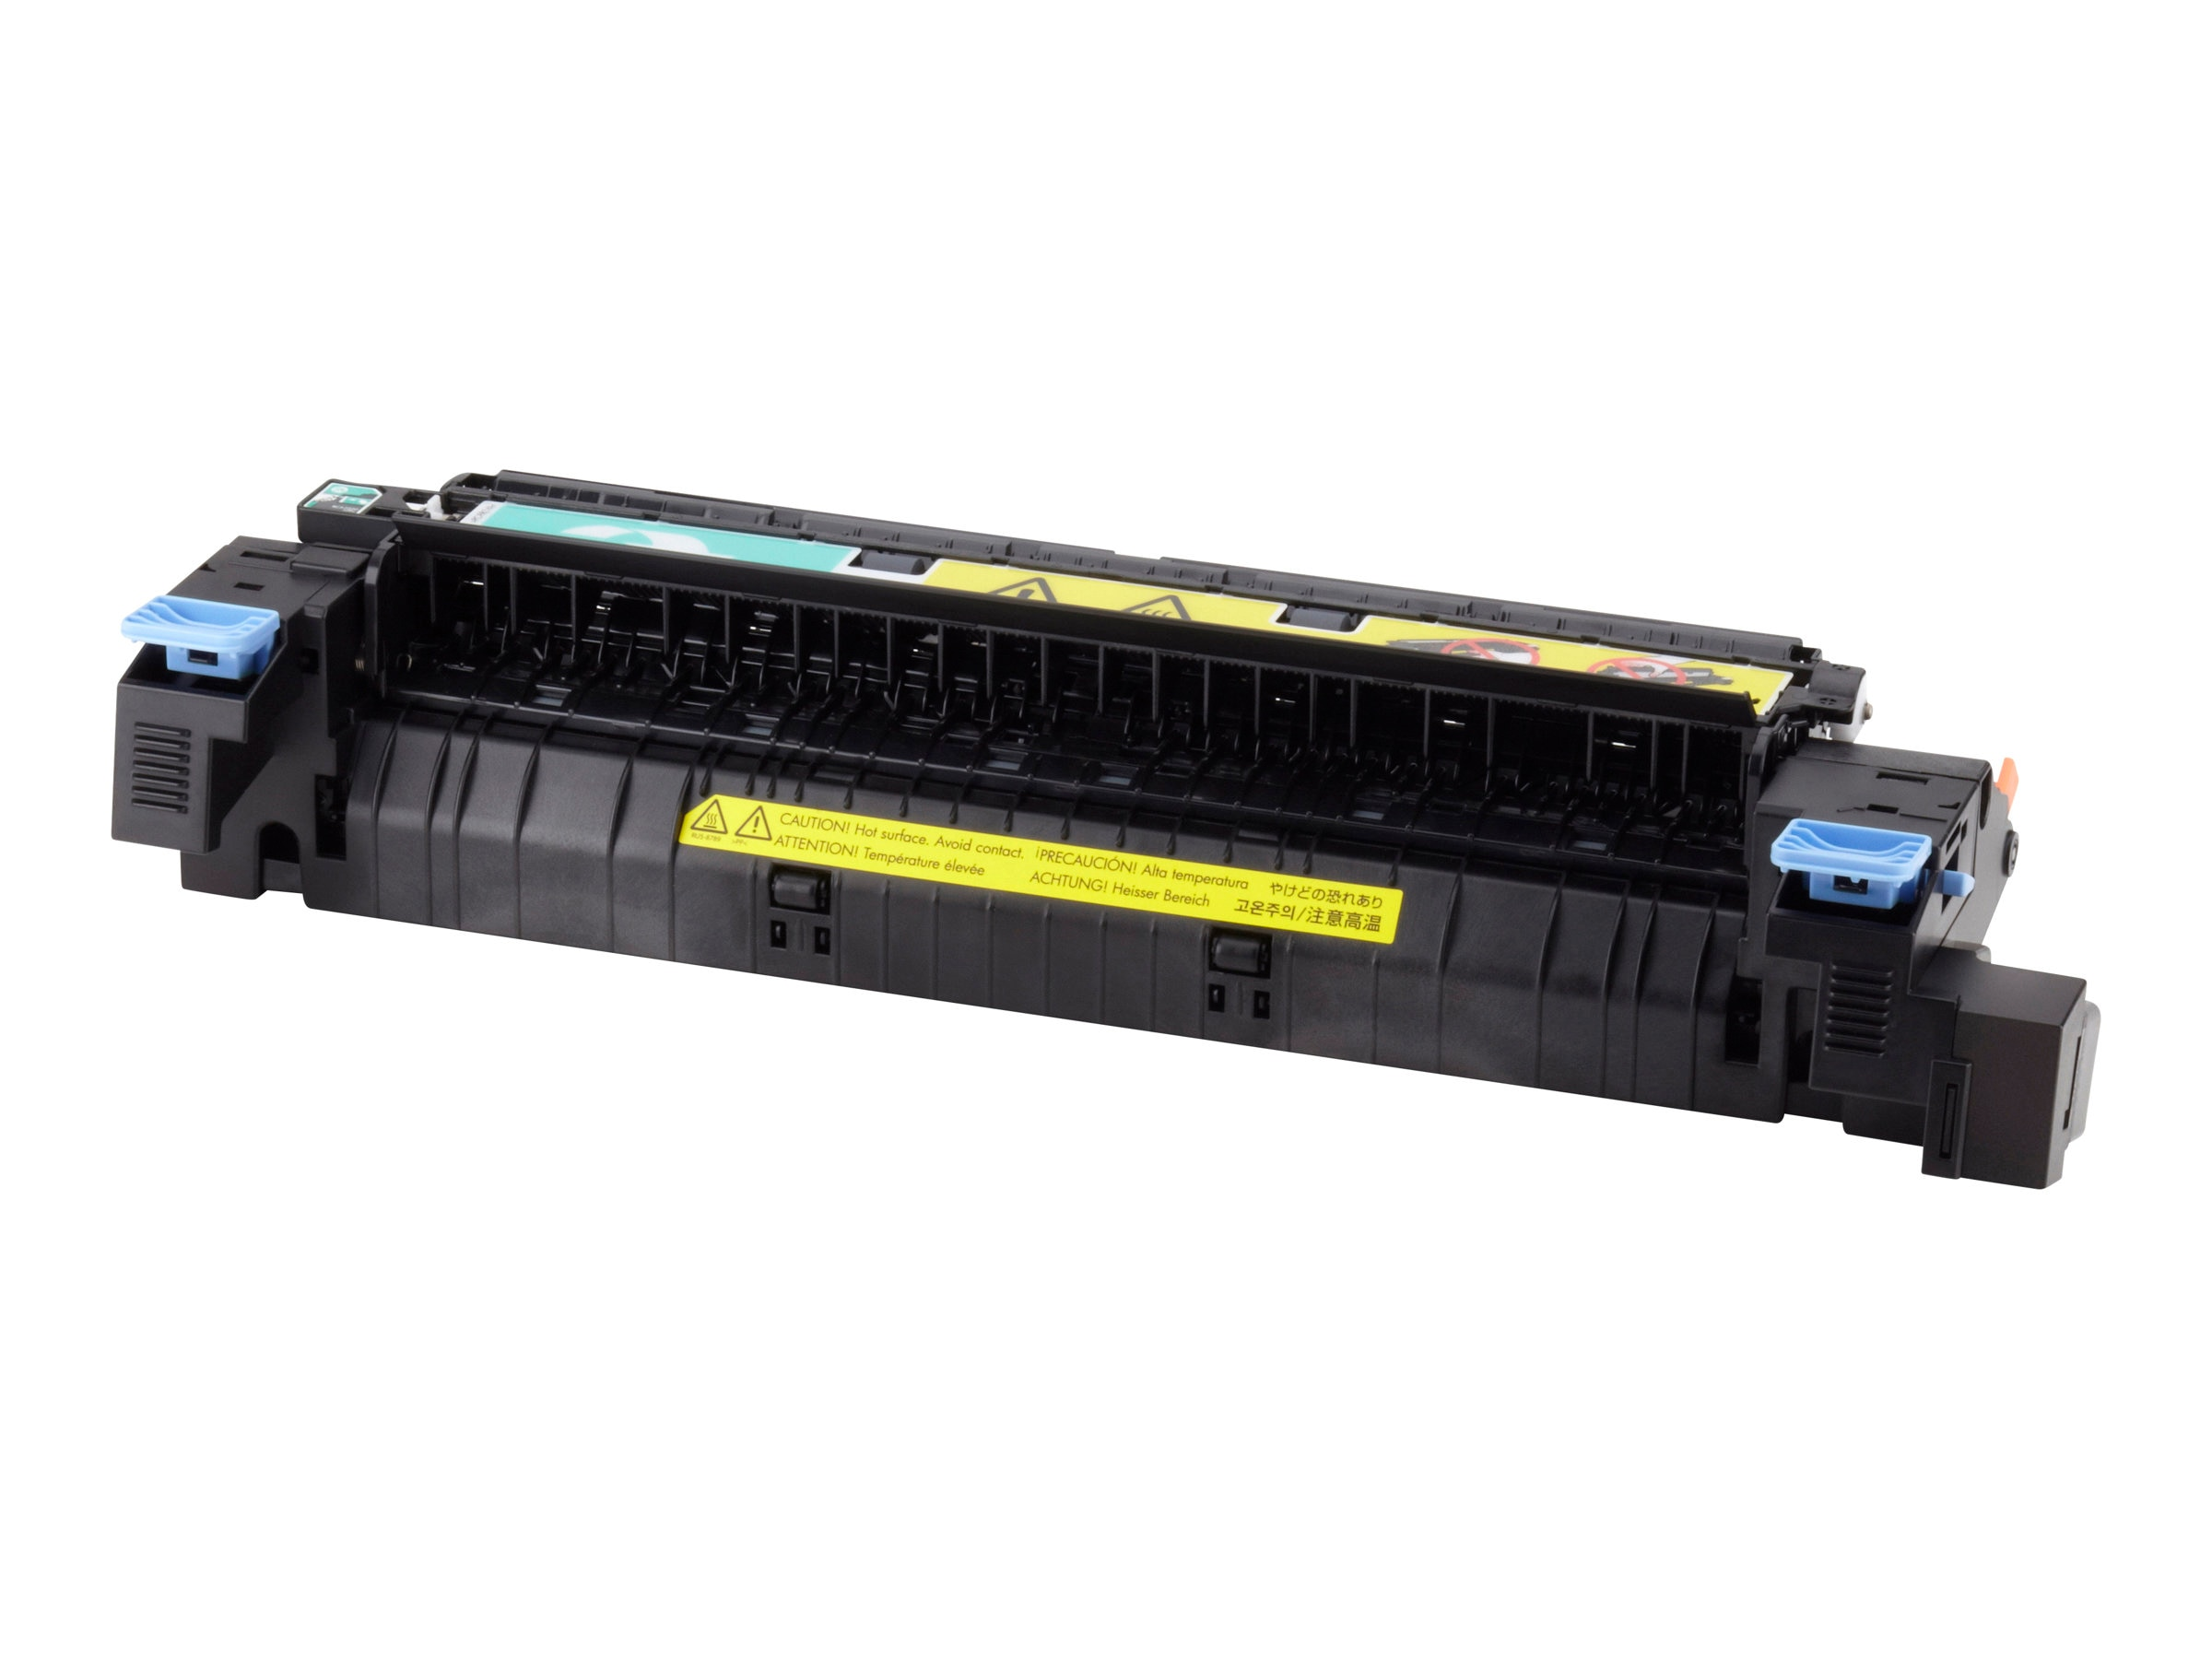 HP LaserJet 220V Maintenance Fuser Kit for HP LaserJet Enterprise 700 M712 & M725 Series